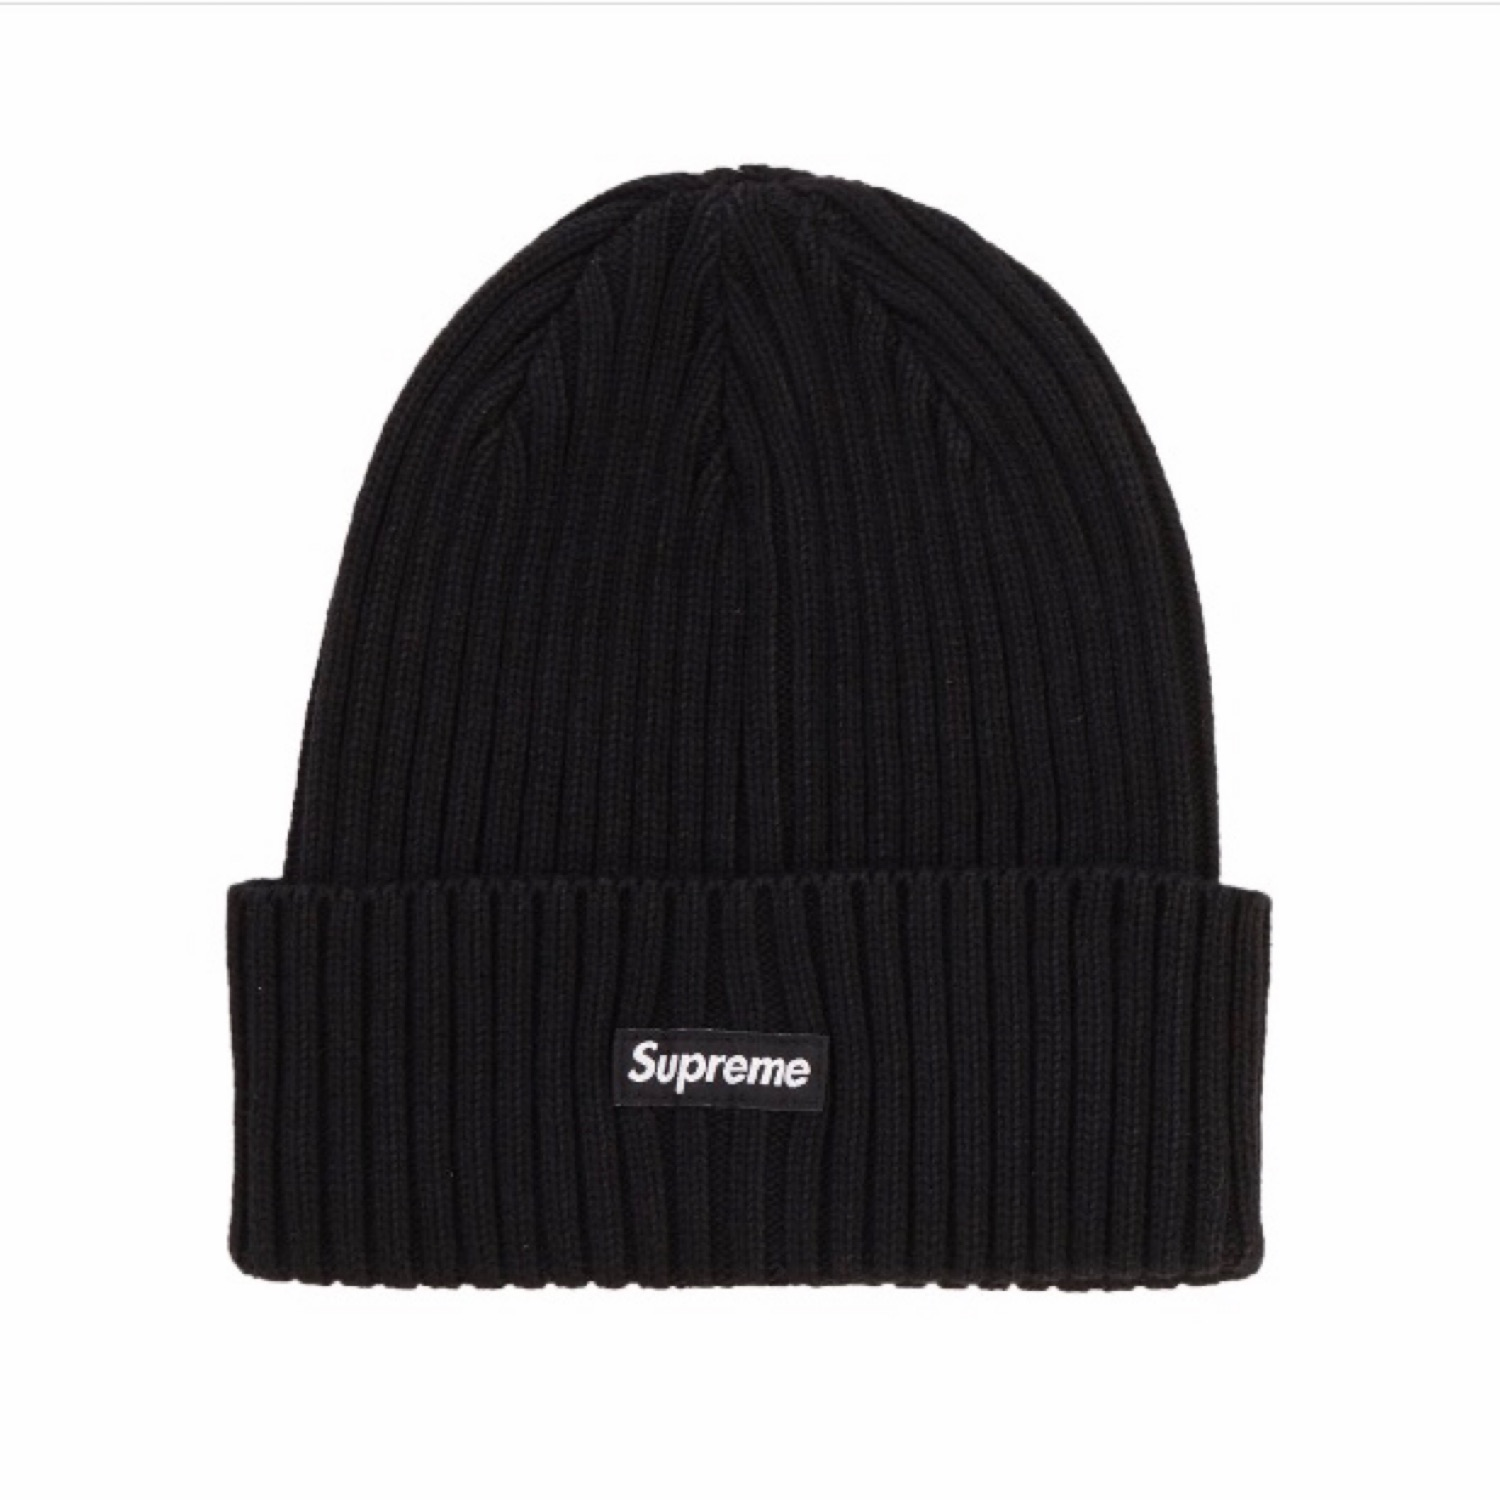 Supreme Overdyed Beanie Ss18 *Deadstock*